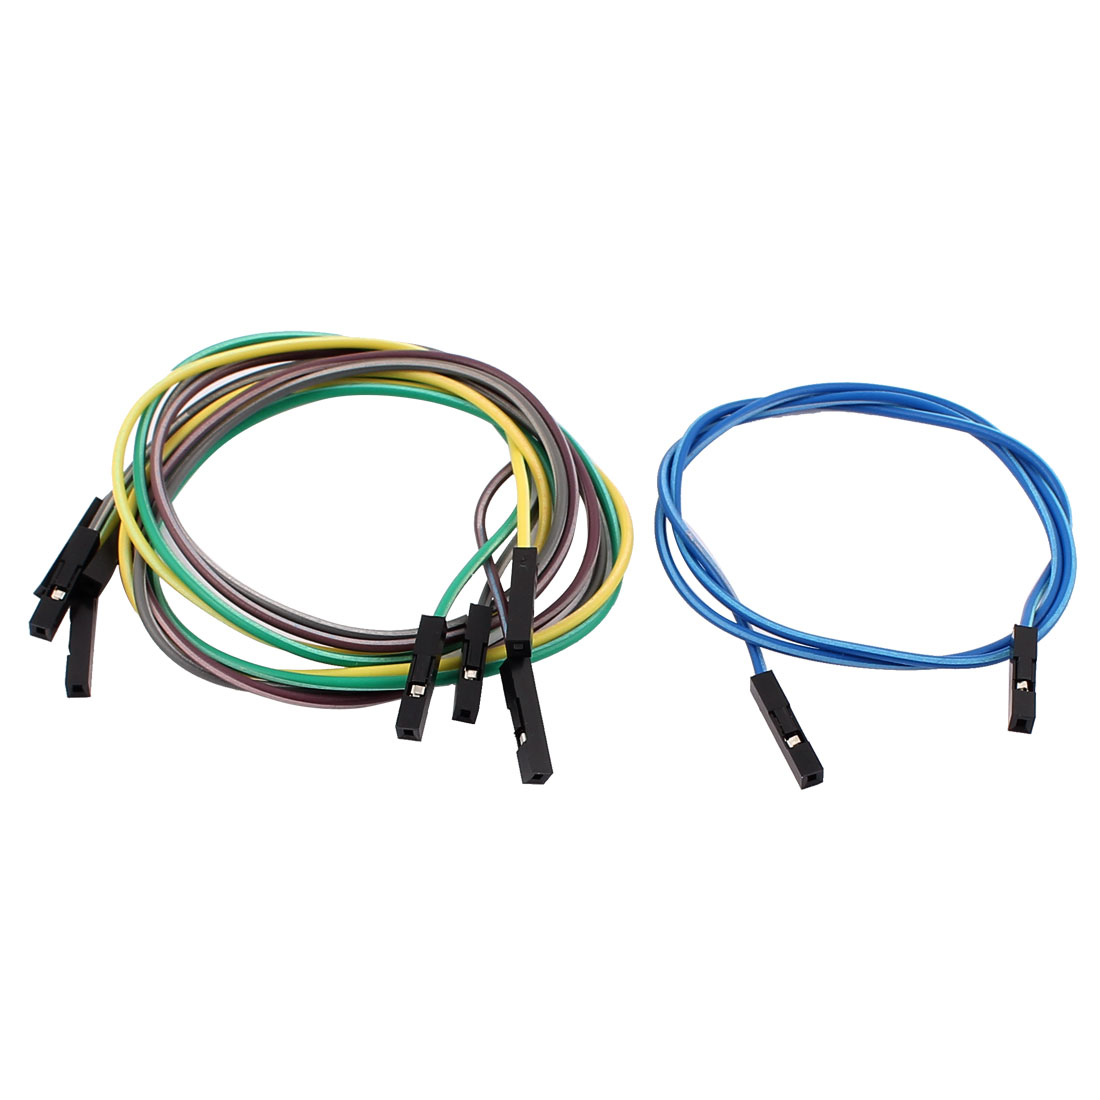 5PCS 2.54mm Pitch 1P Female Breadboard Double Head Jumper Wire Cable 40cm Length